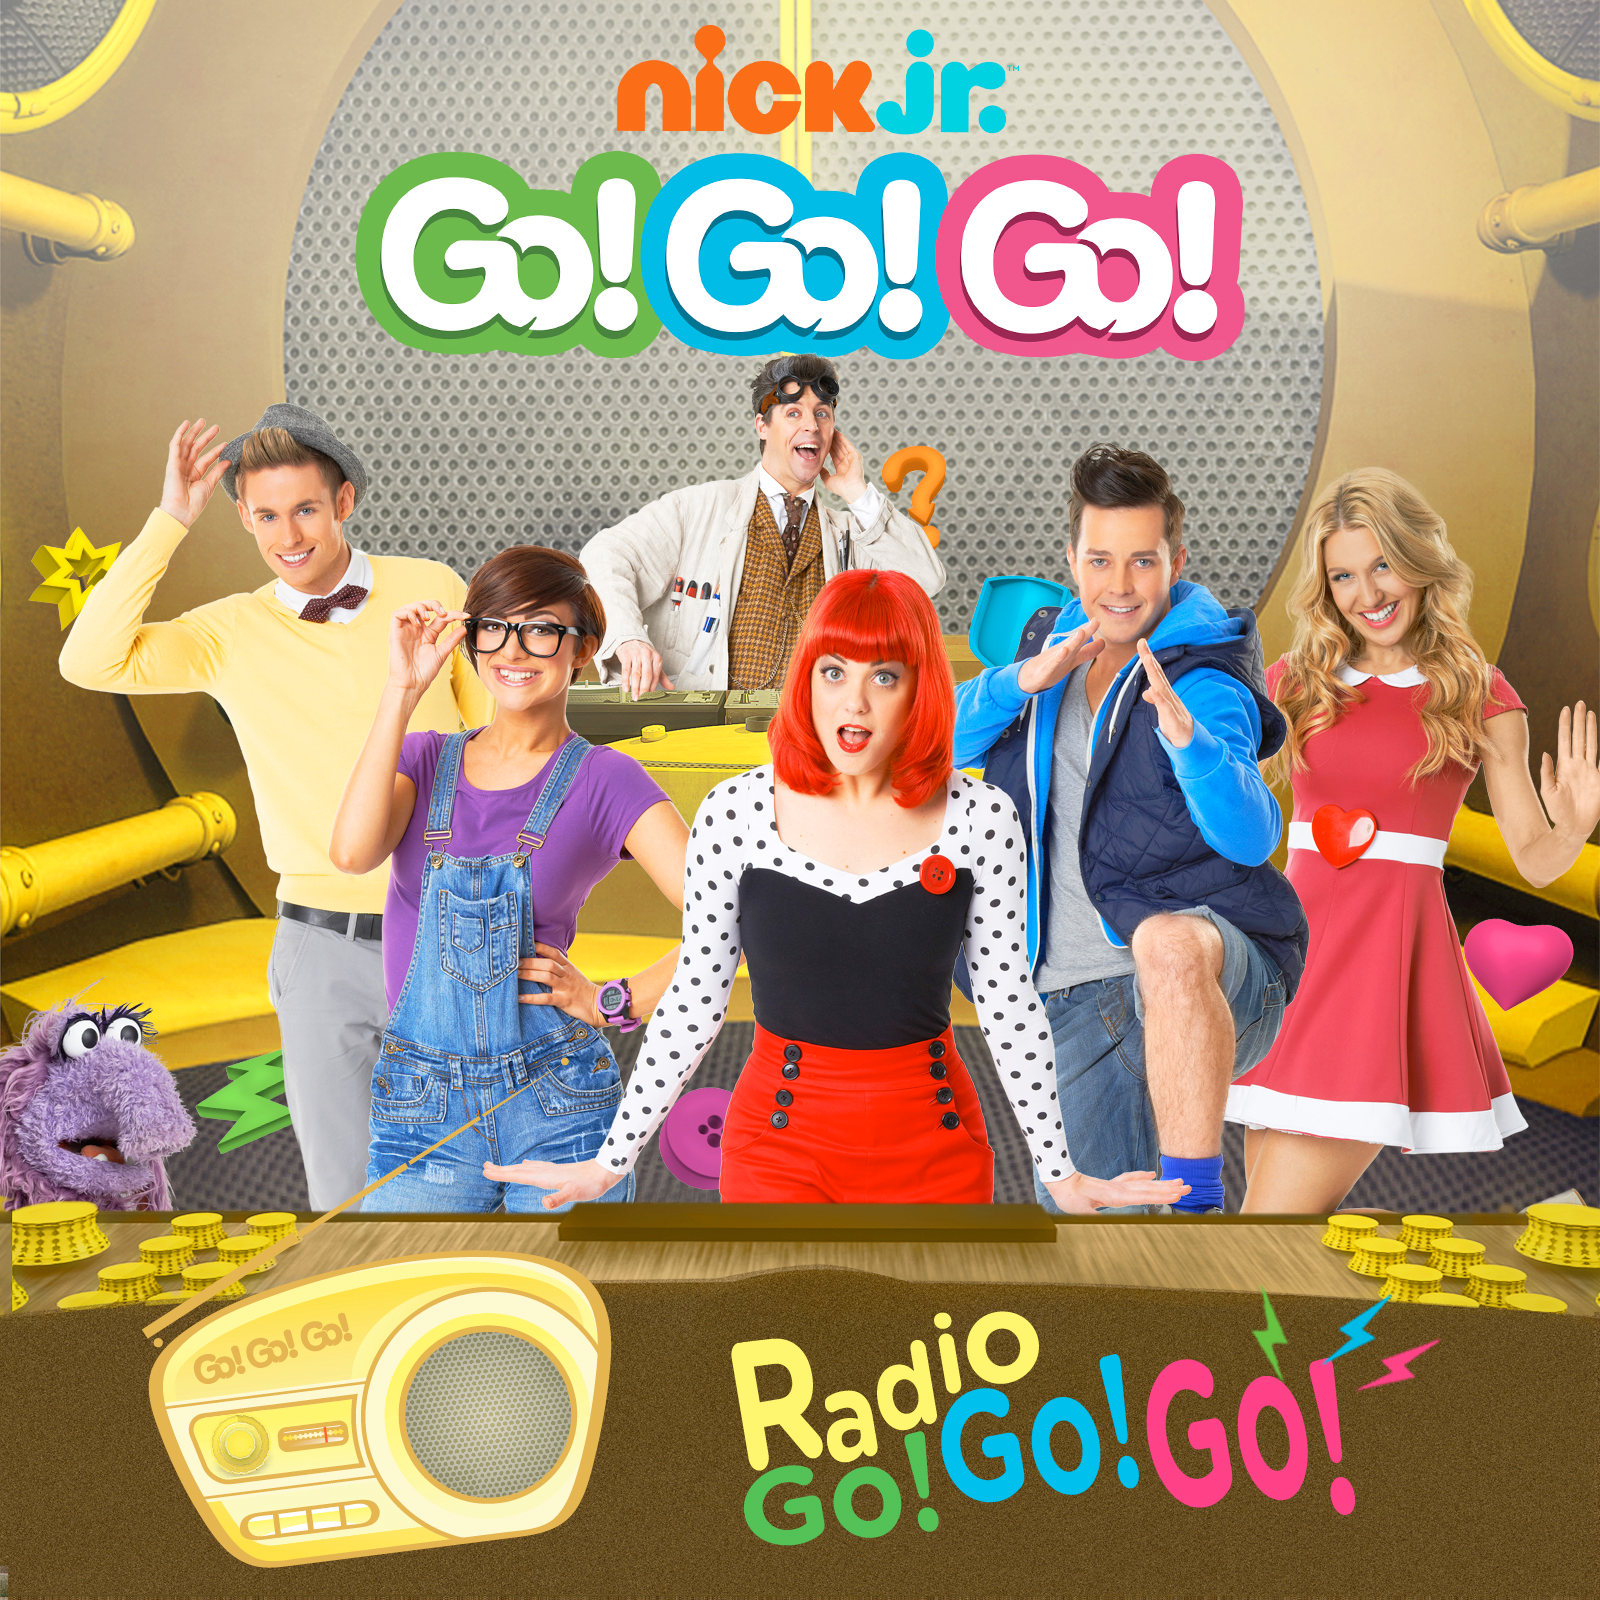 Giveaway: Win 1 of 3 Copies of GoGoGo CD Album The Oliver\\\'s Madhouse